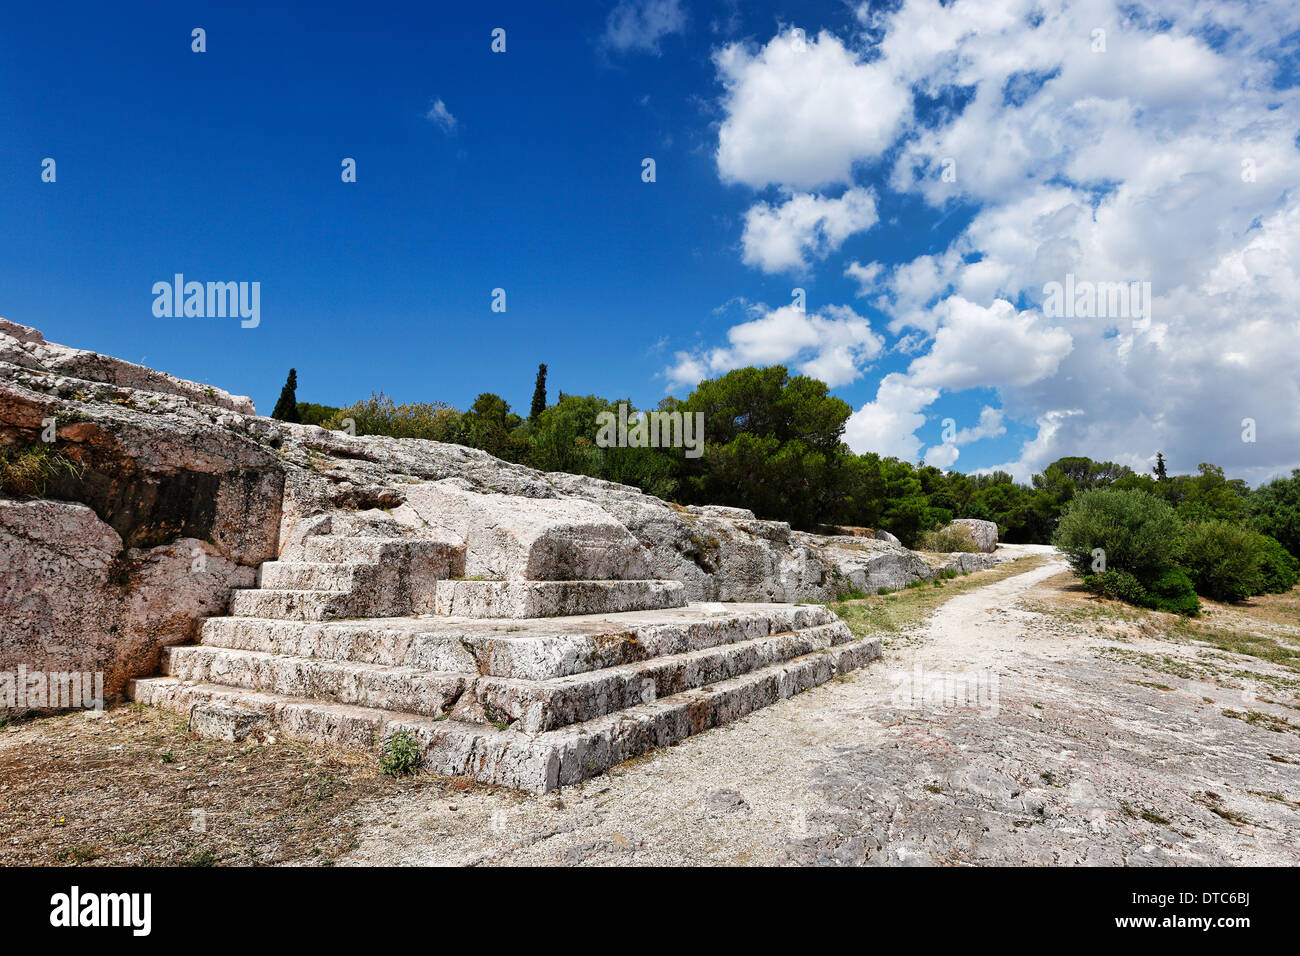 The Pnyx (507 B.C.) with the carved steps of the speaker's platform (bema)  near the Athenian Acropolis, Greece. - Stock Image